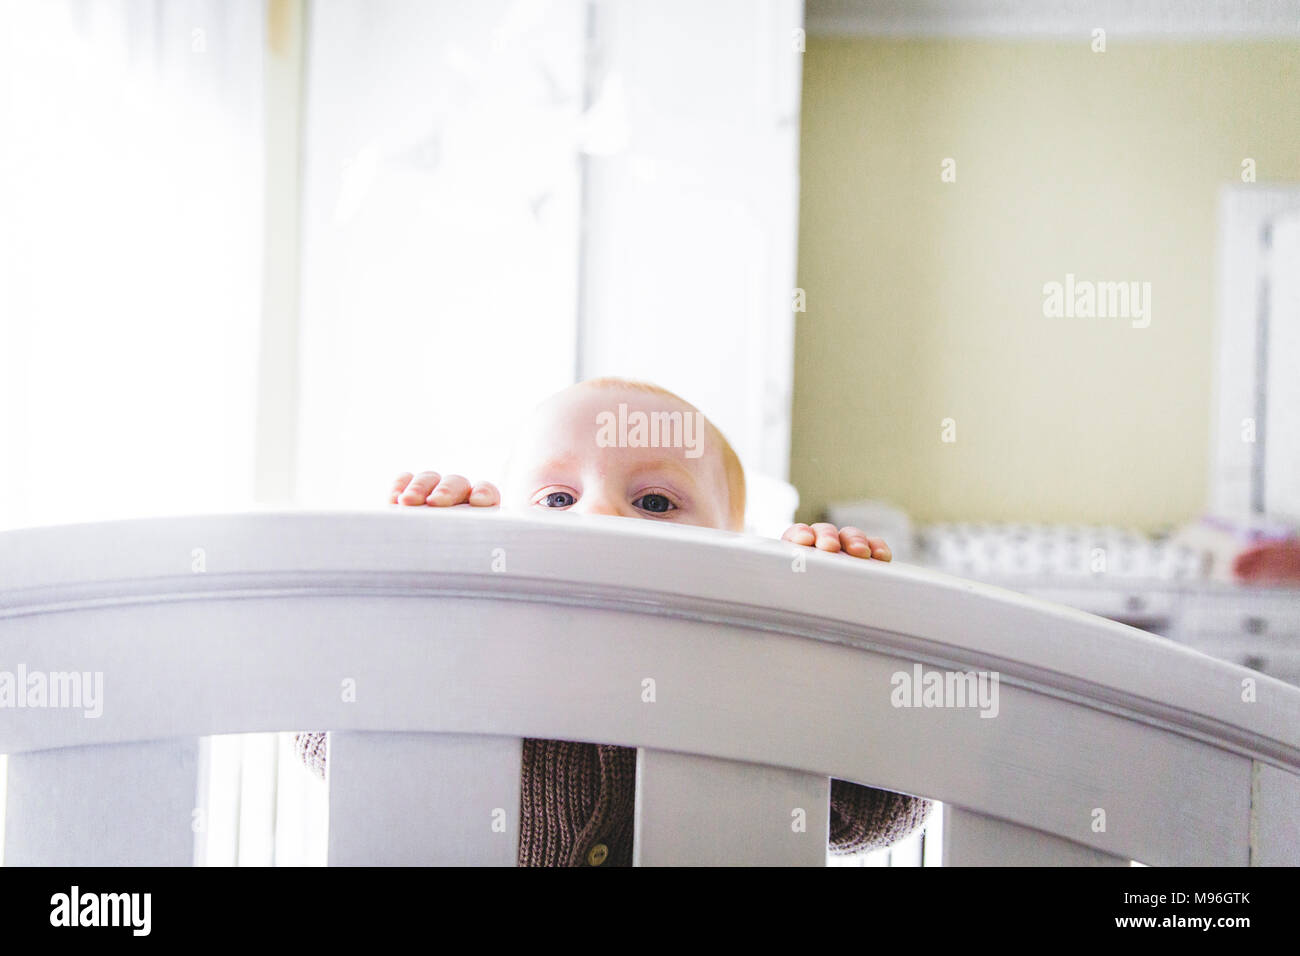 Baby peering over bed - Stock Image